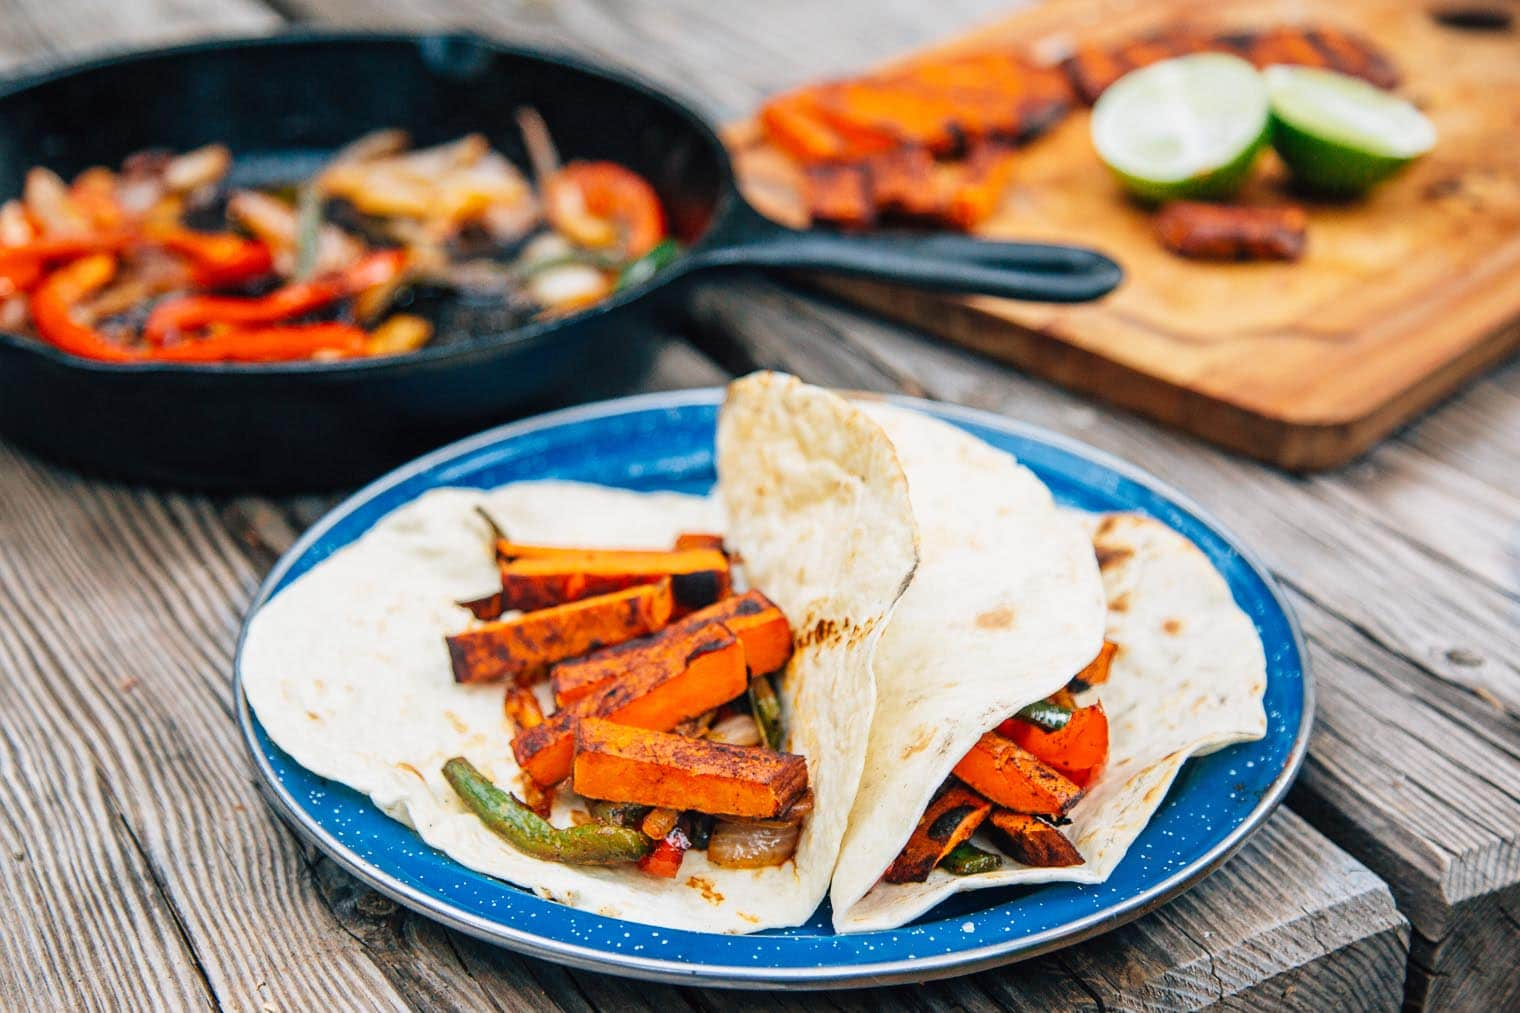 Fajitas filled with sweet potatoes, roasted peppers and onions on a blue plate